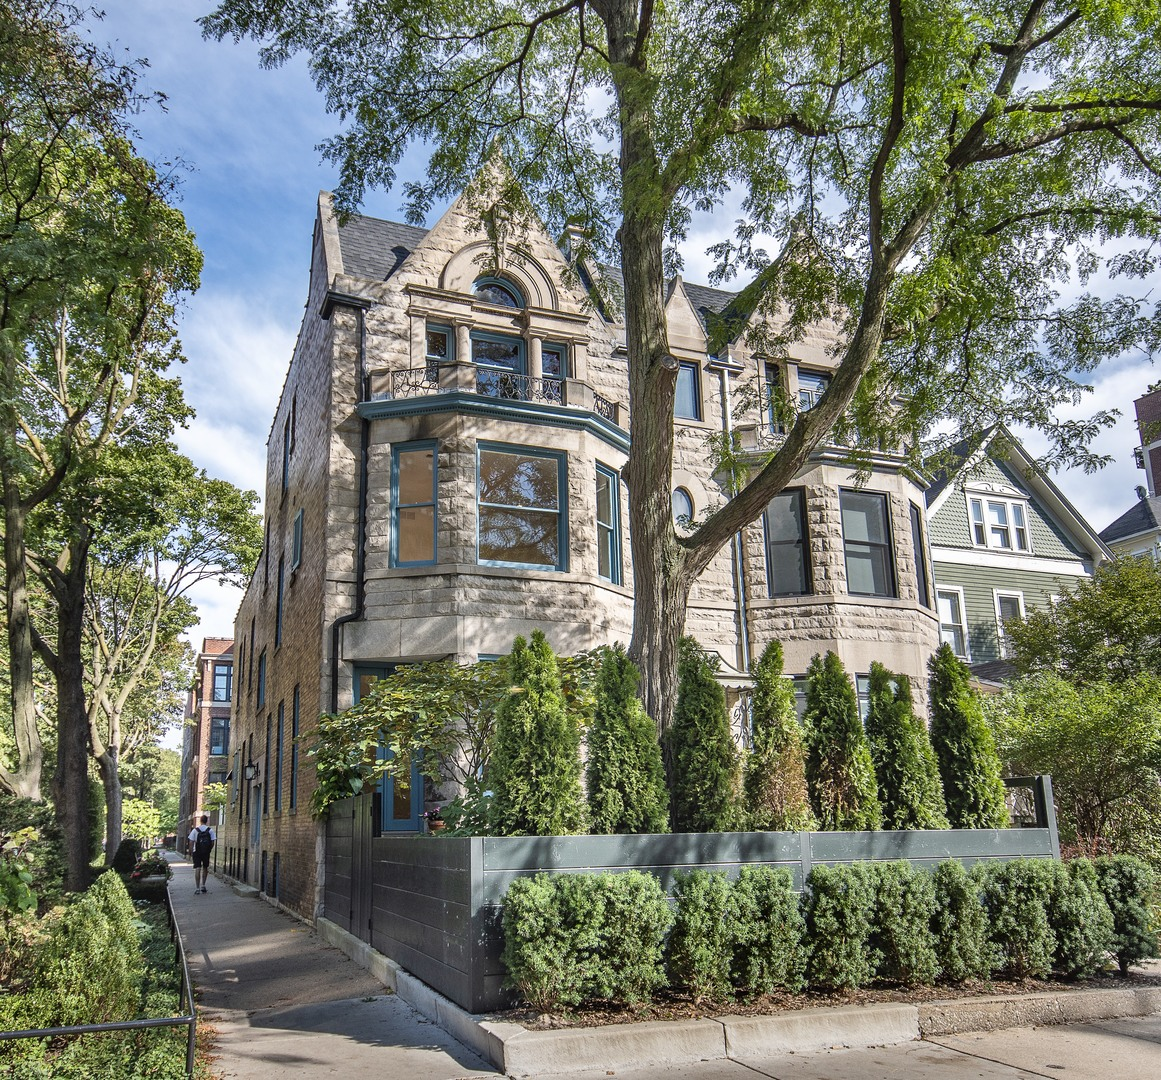 1401 EAST 56TH STREET, CHICAGO, IL 60637